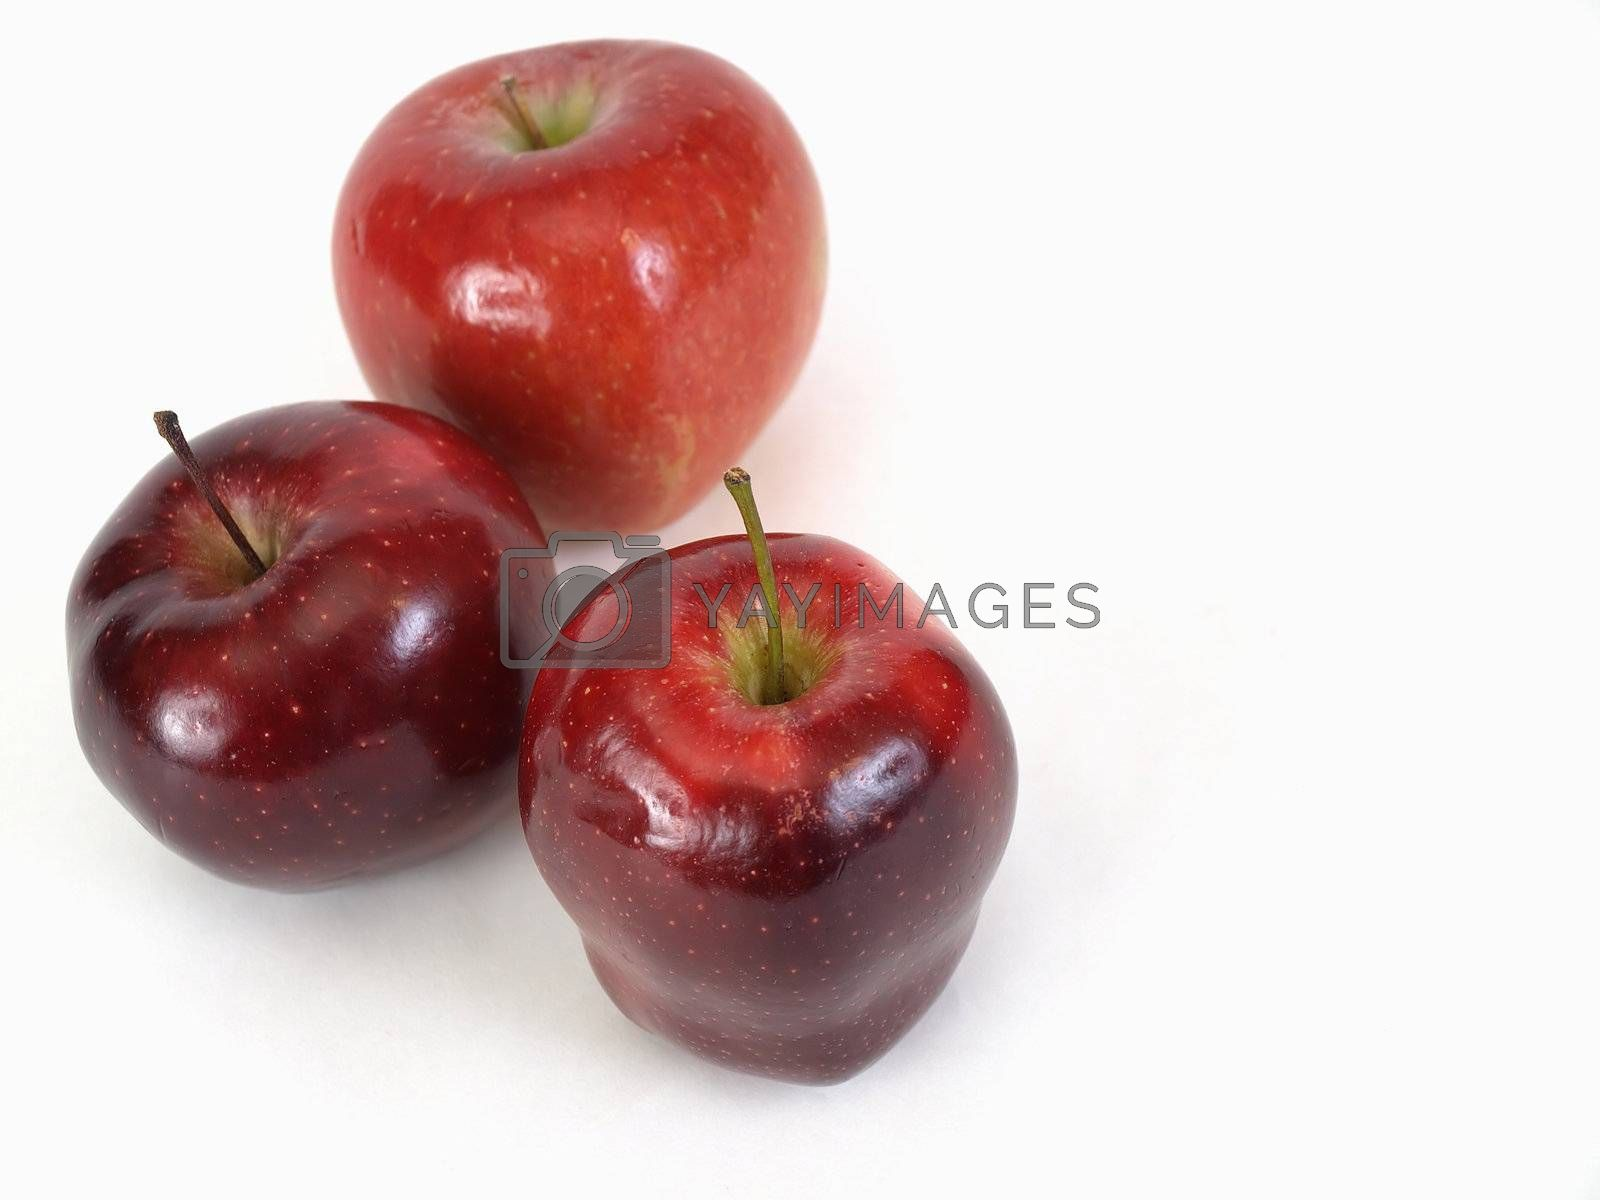 Three red delicious apples on an isolated white background.